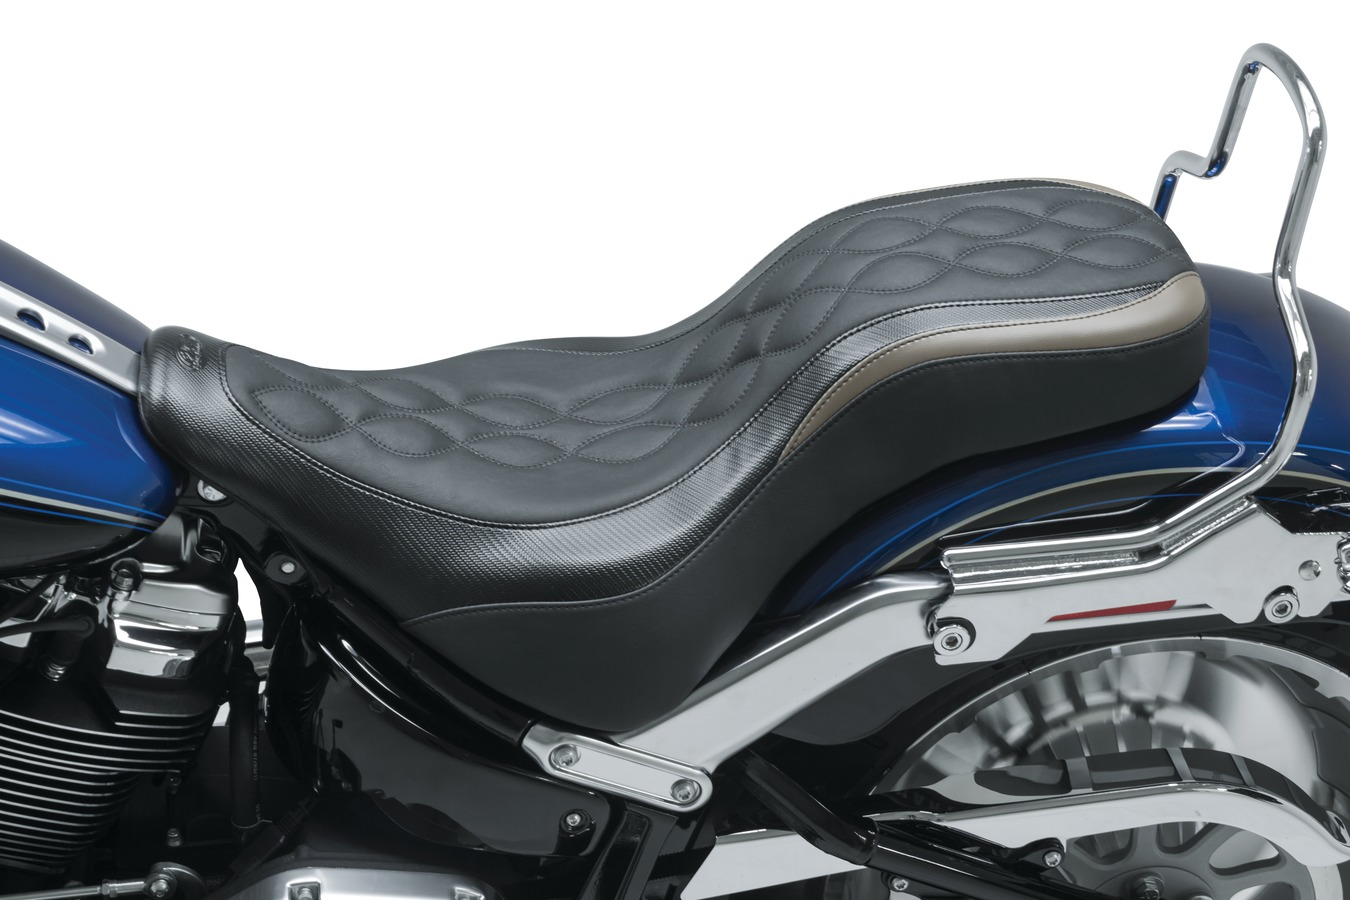 DayTripper™ One-Piece Seat for Harley-Davidson Fat Boy 2018-